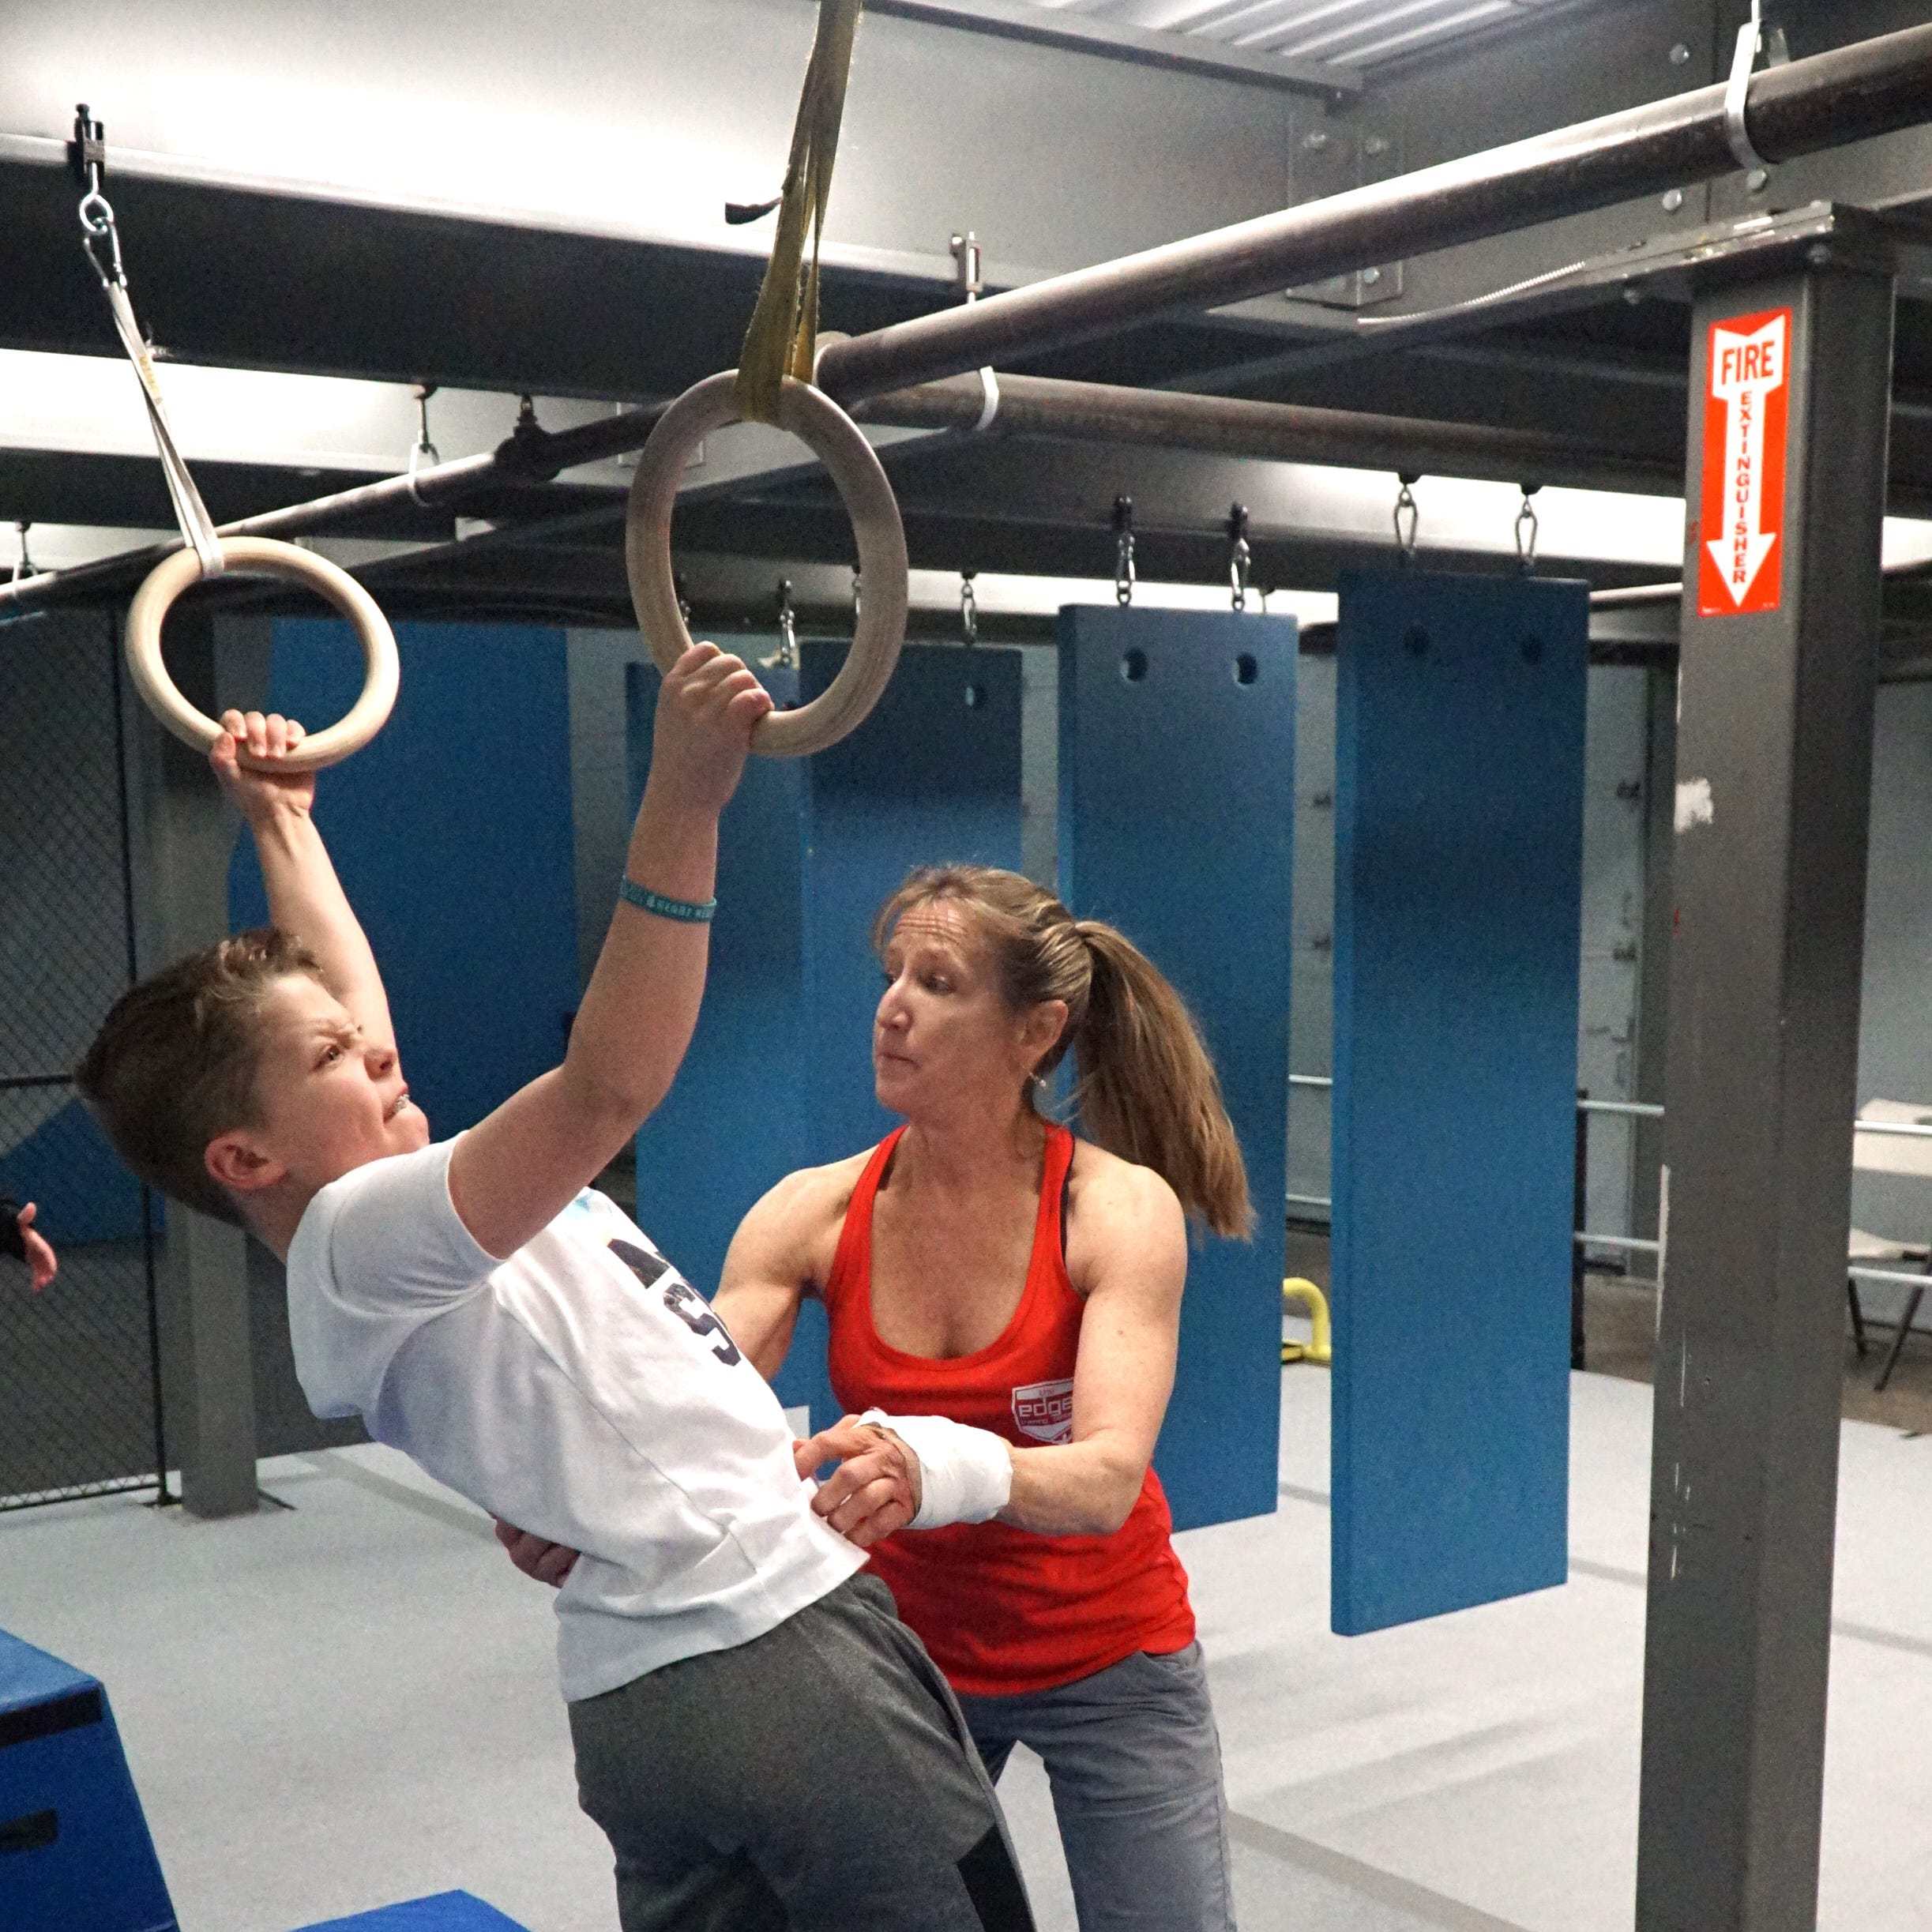 Ninja warrior training facility opens in Plymouth